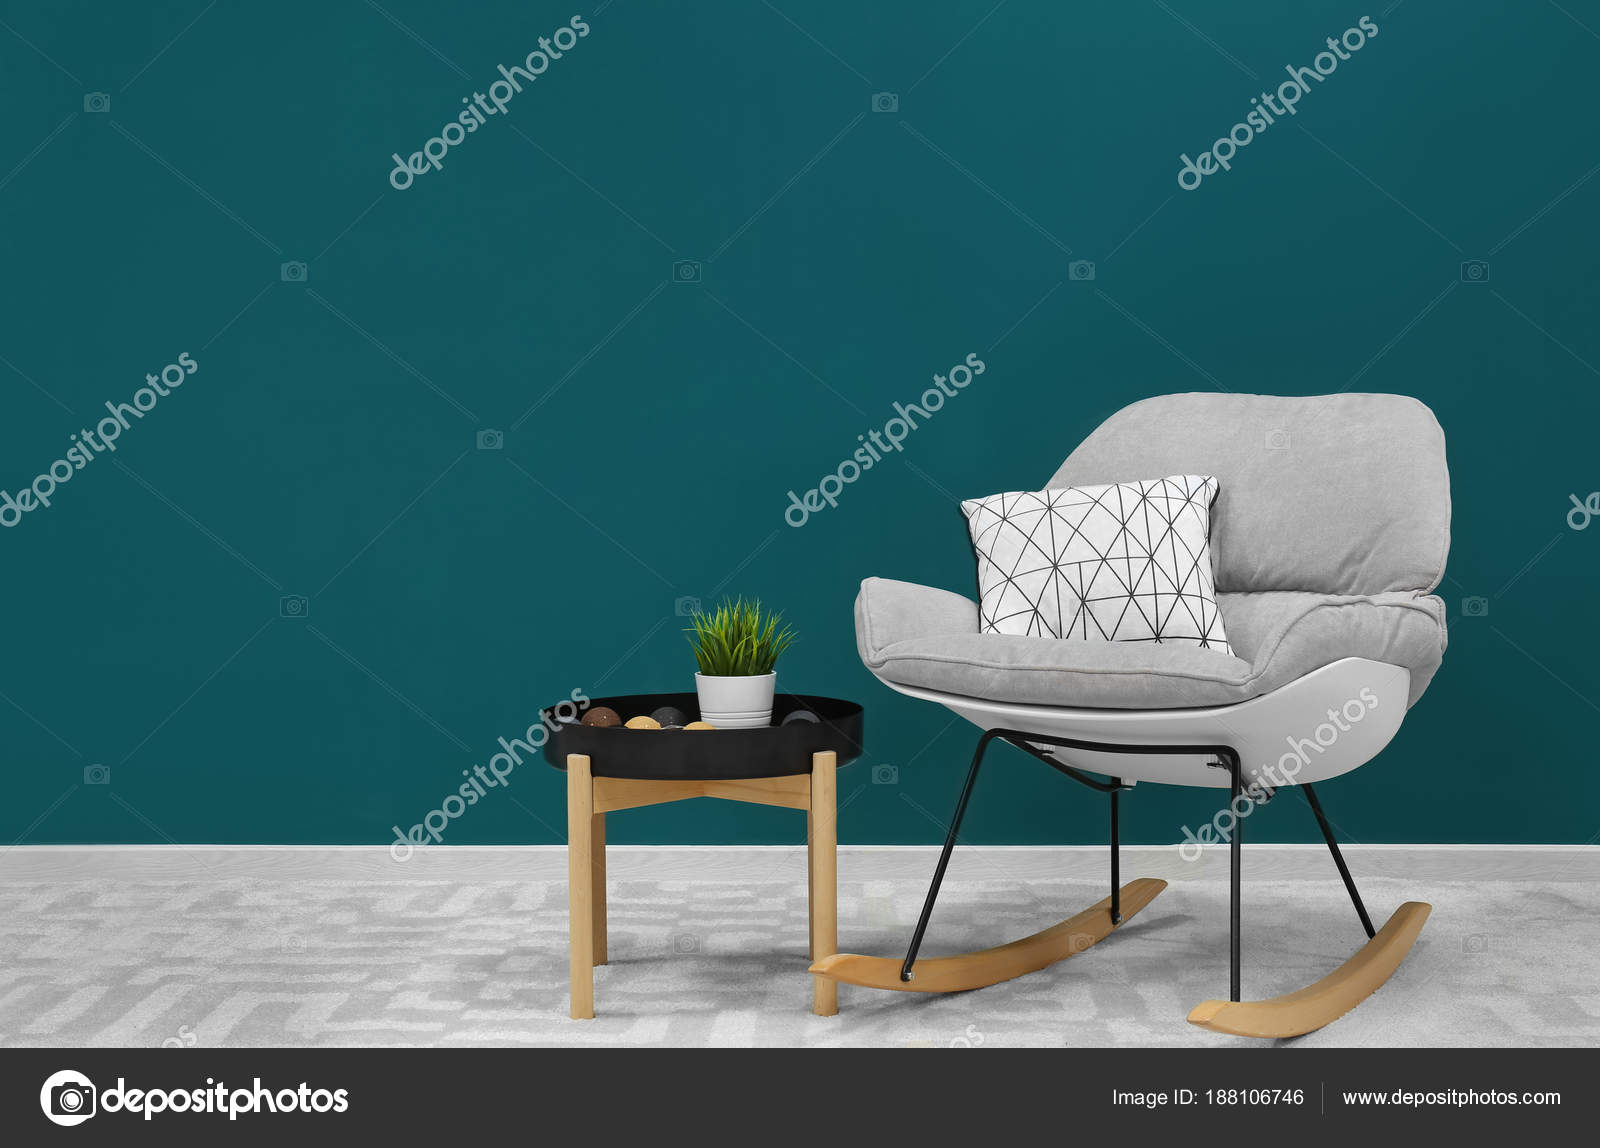 Trendy Living Room Interior Comfortable Armchair Shaded Spruce Wall Stock Photo C Belchonock 188106746